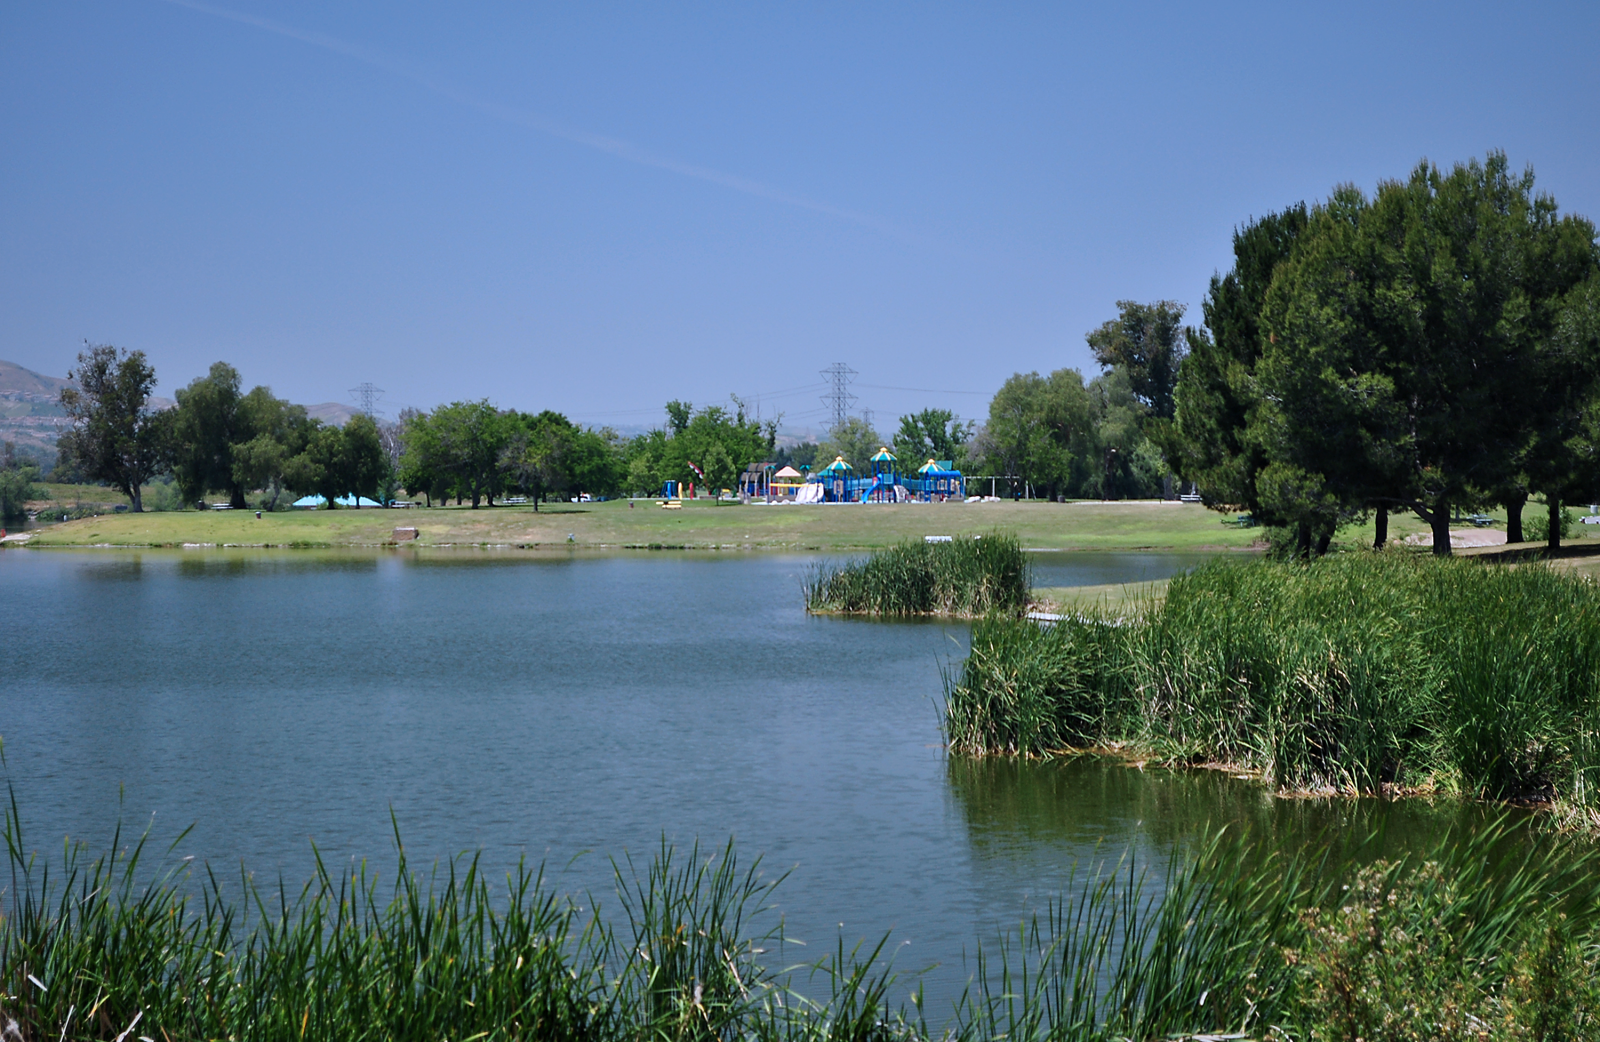 Prado lake view with playground in the background.